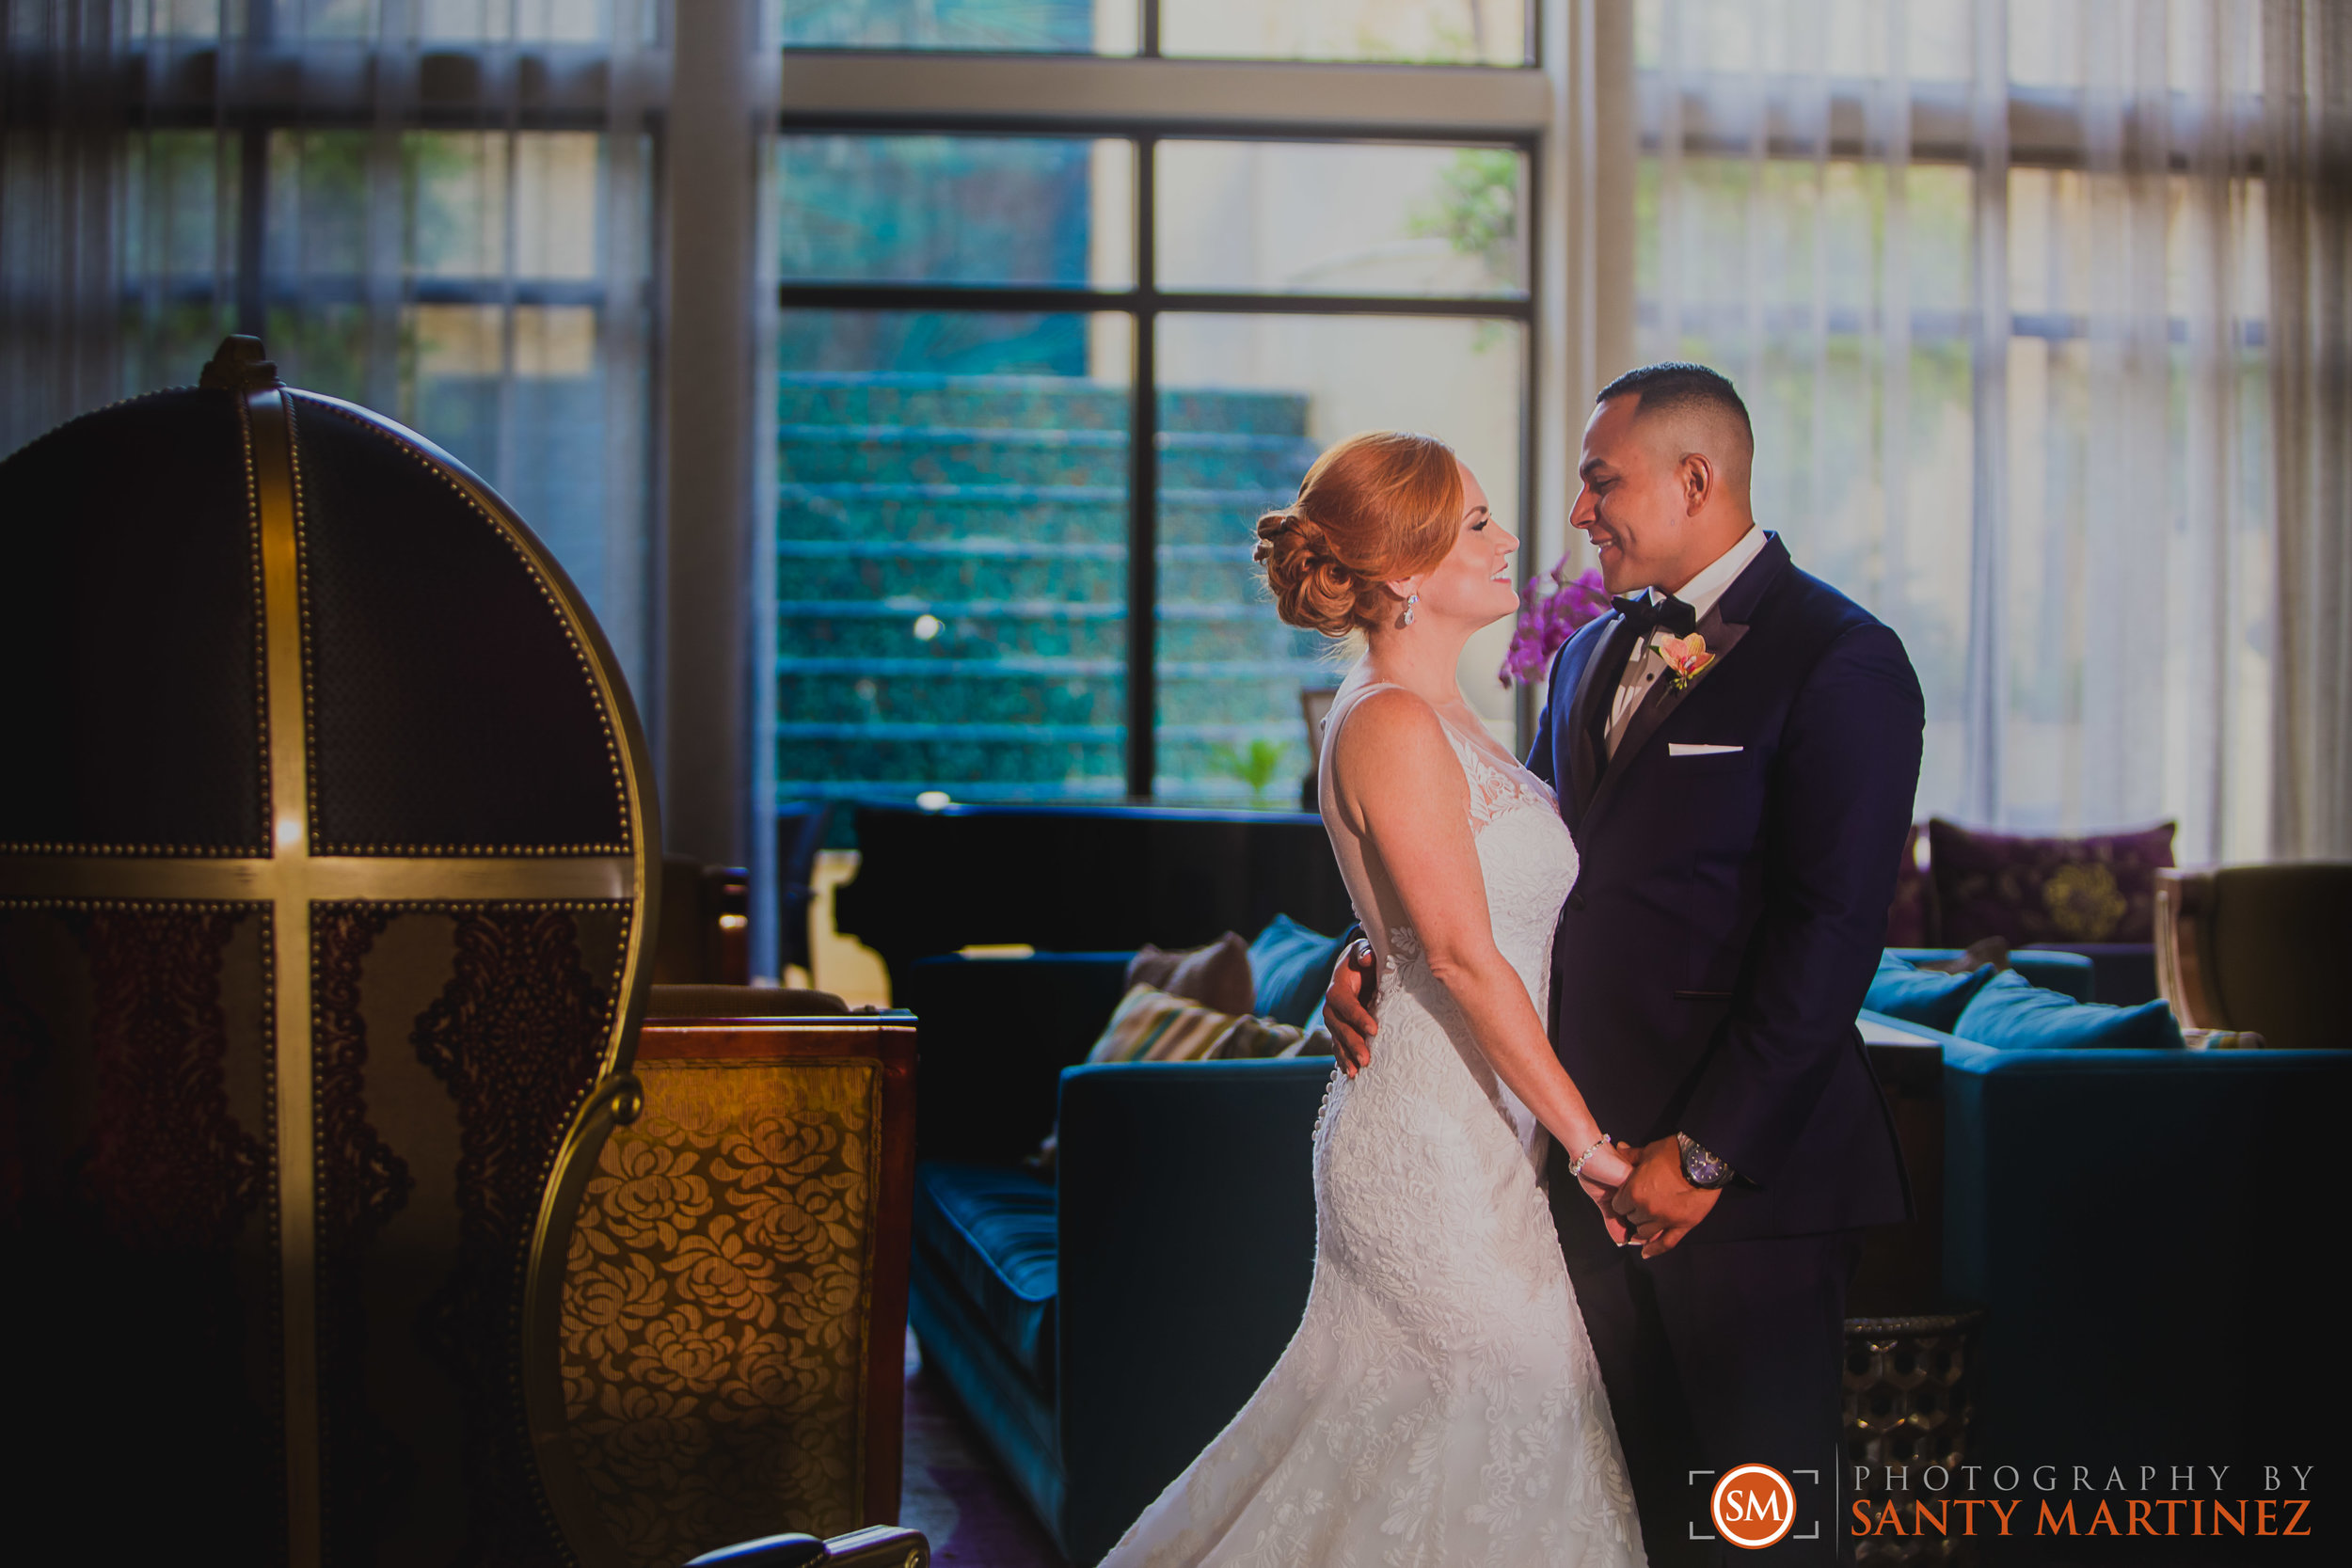 Wedding Ritz Carlton Coconut Grove - Santy Martinez-13.jpg